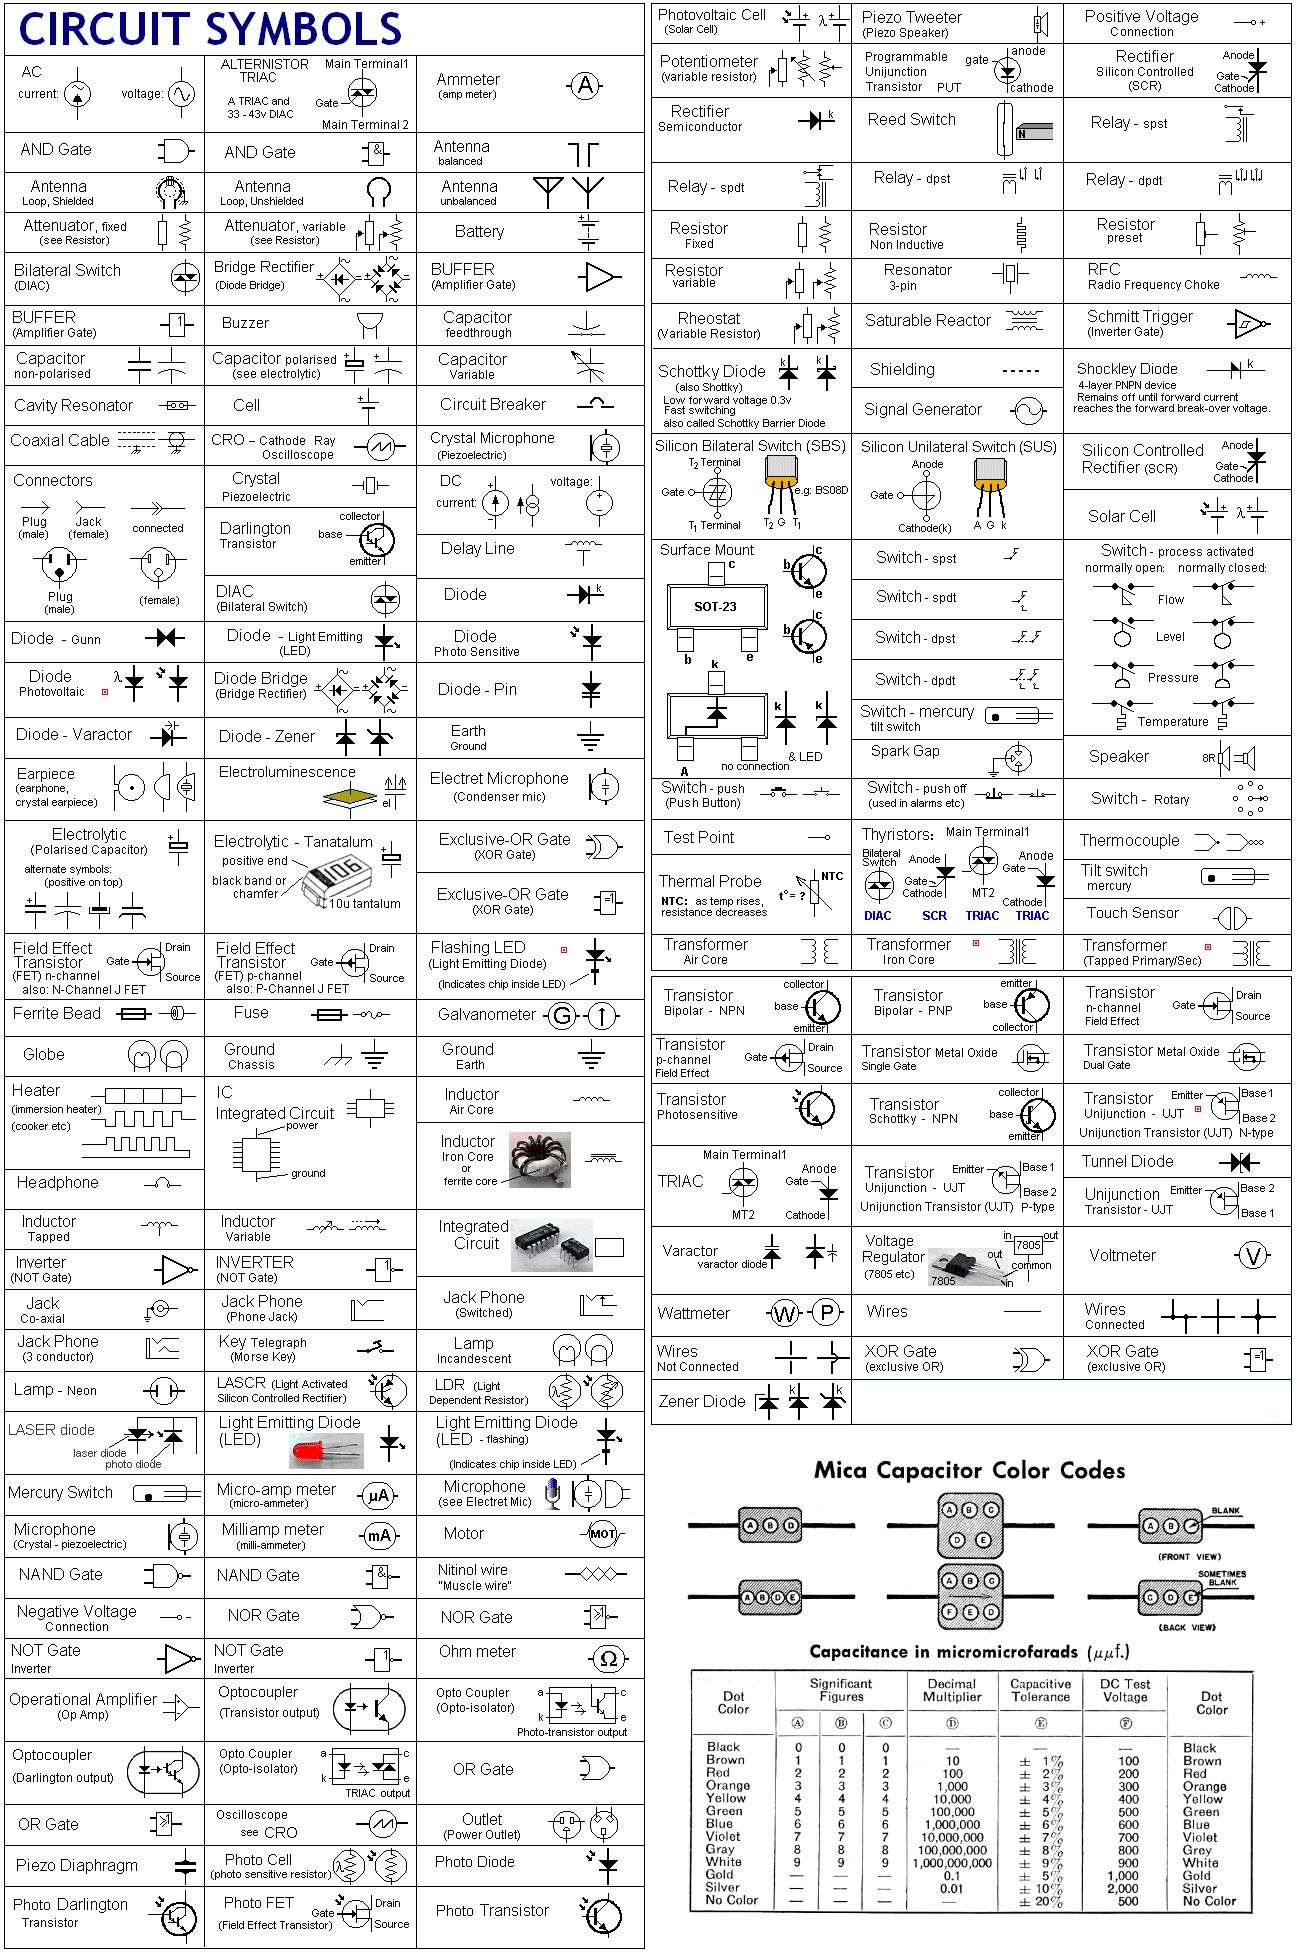 6c64fb84c8e162b28334051891c290f4 schematic symbols chart electric circuit symbols a considerably electronic wiring diagram symbols at alyssarenee.co